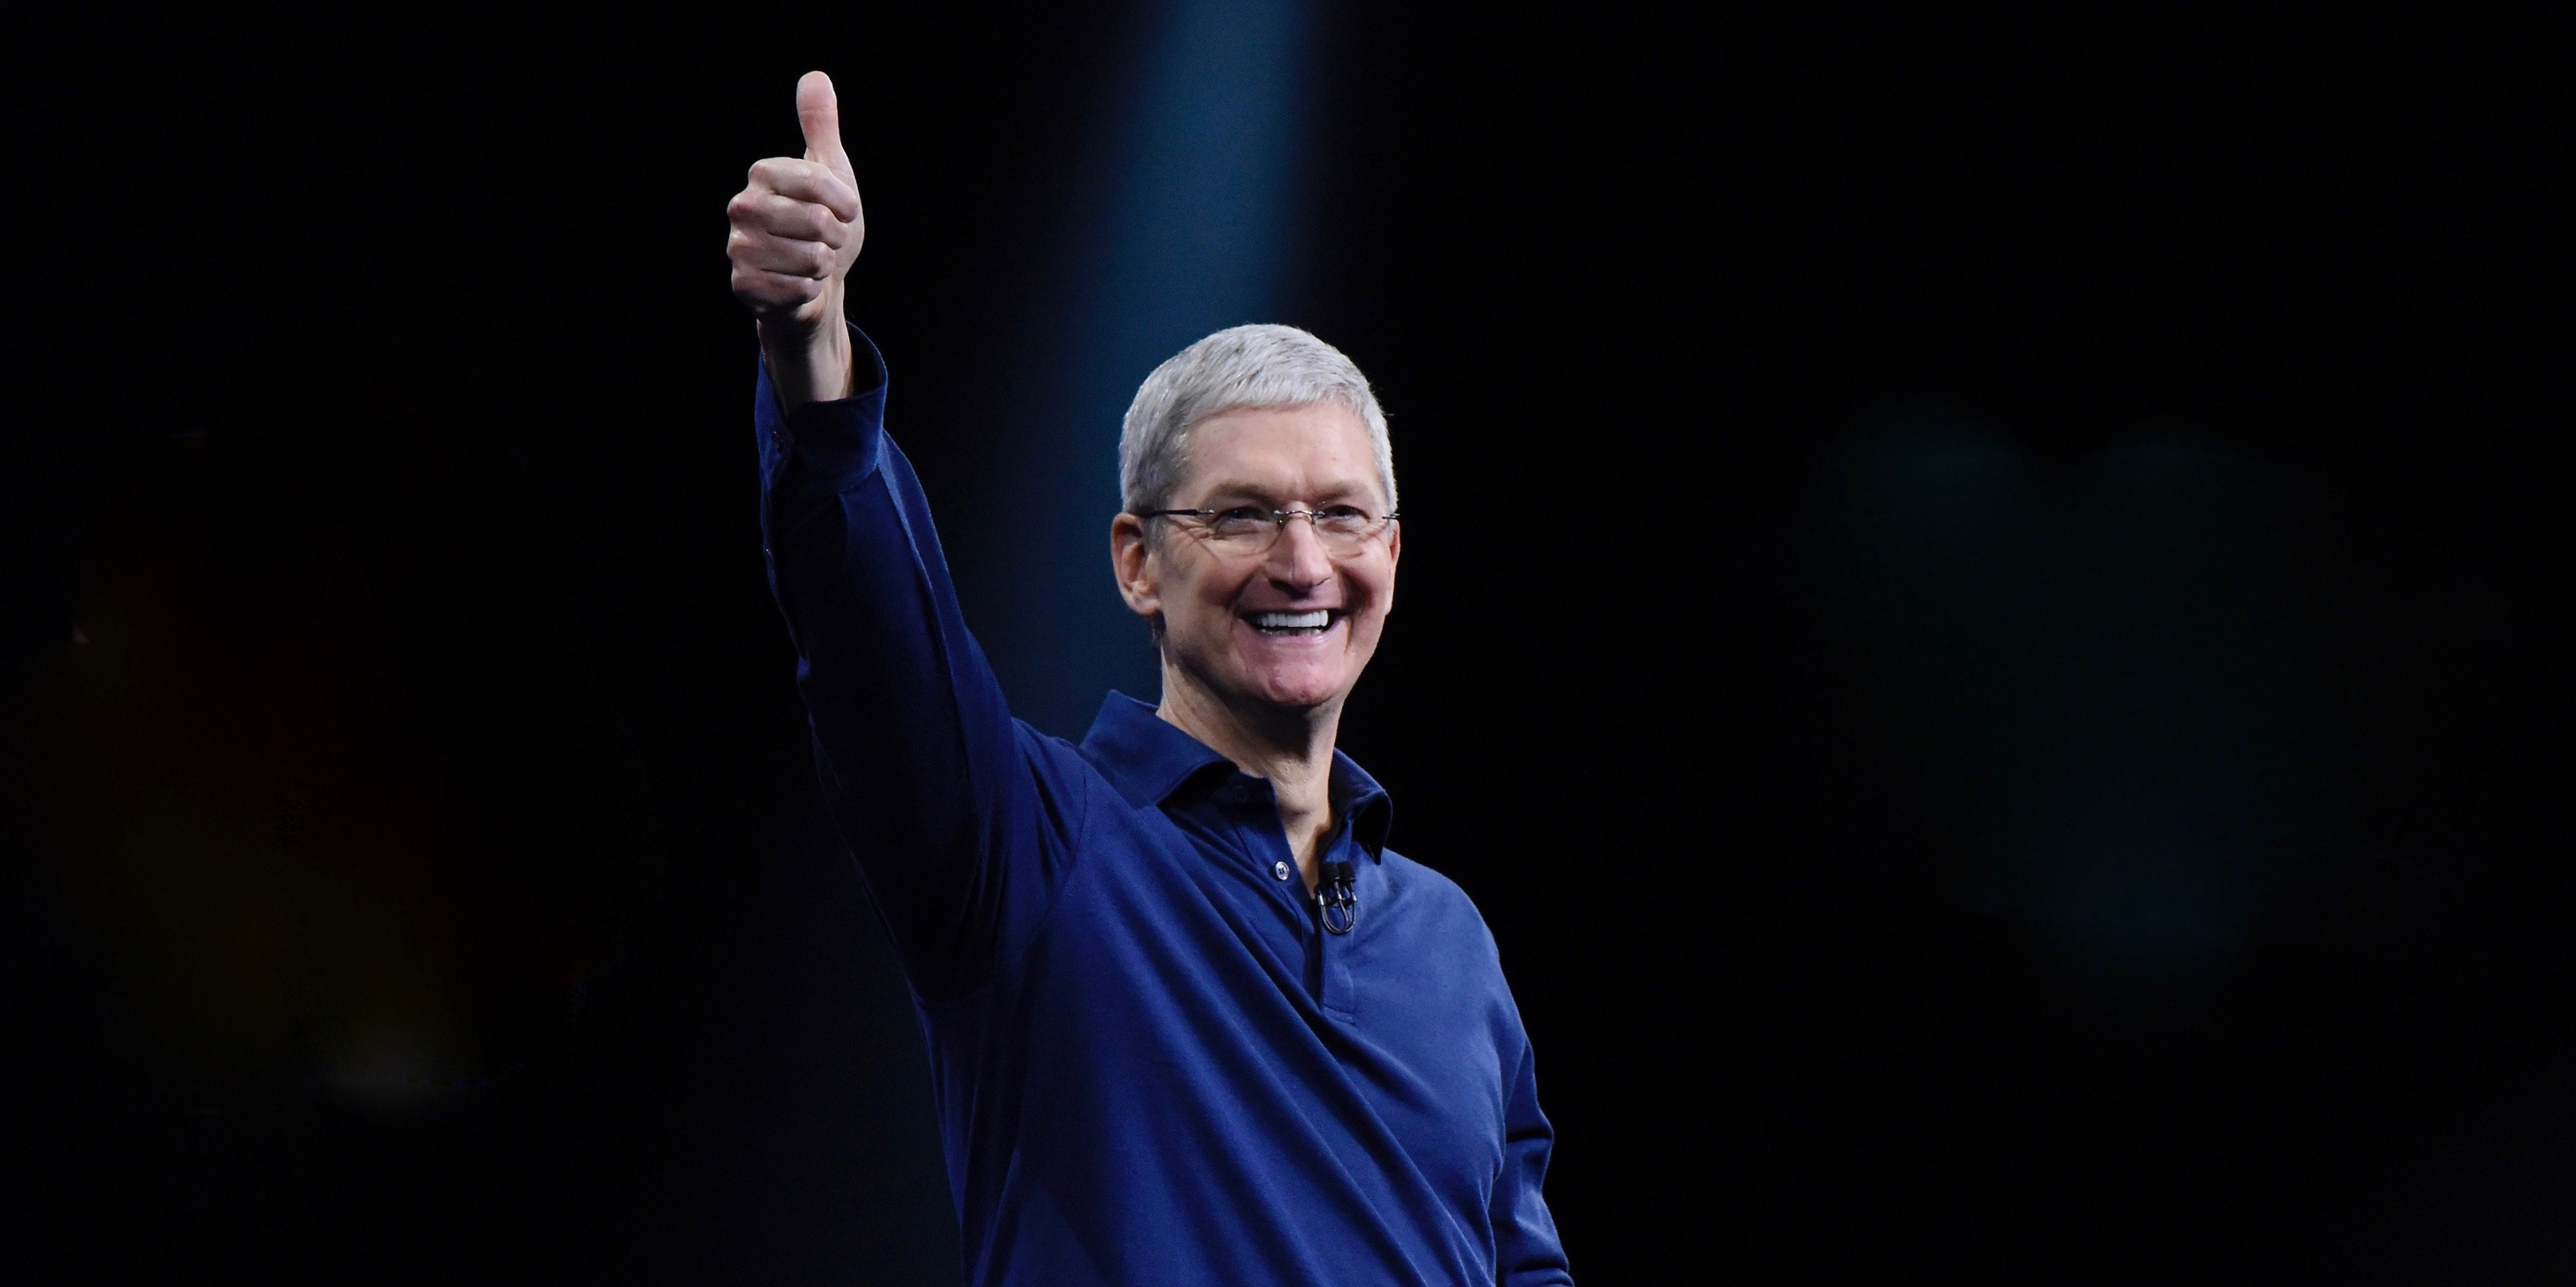 WSJ report details Apple and Qualcomm relationship, hostile meeting between CEOs